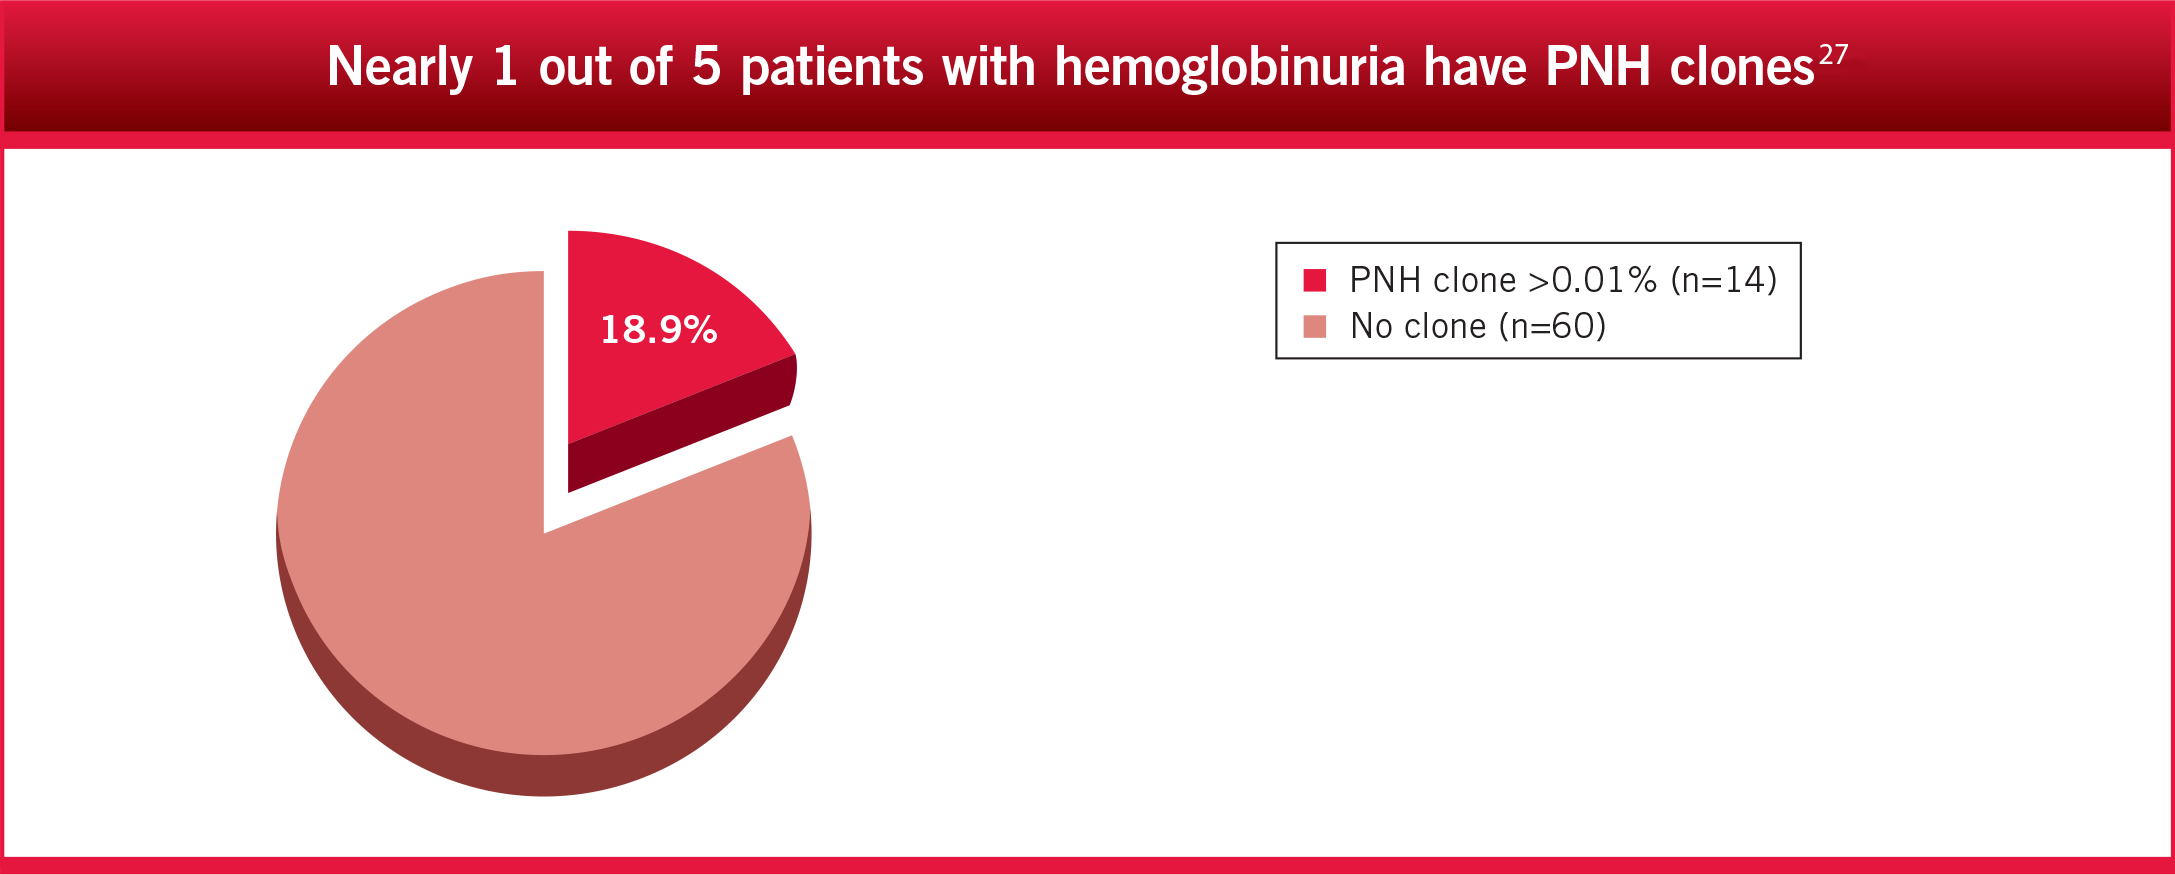 Nearly 1 out of 5 patients with hemoglobinuria have PNH clones3